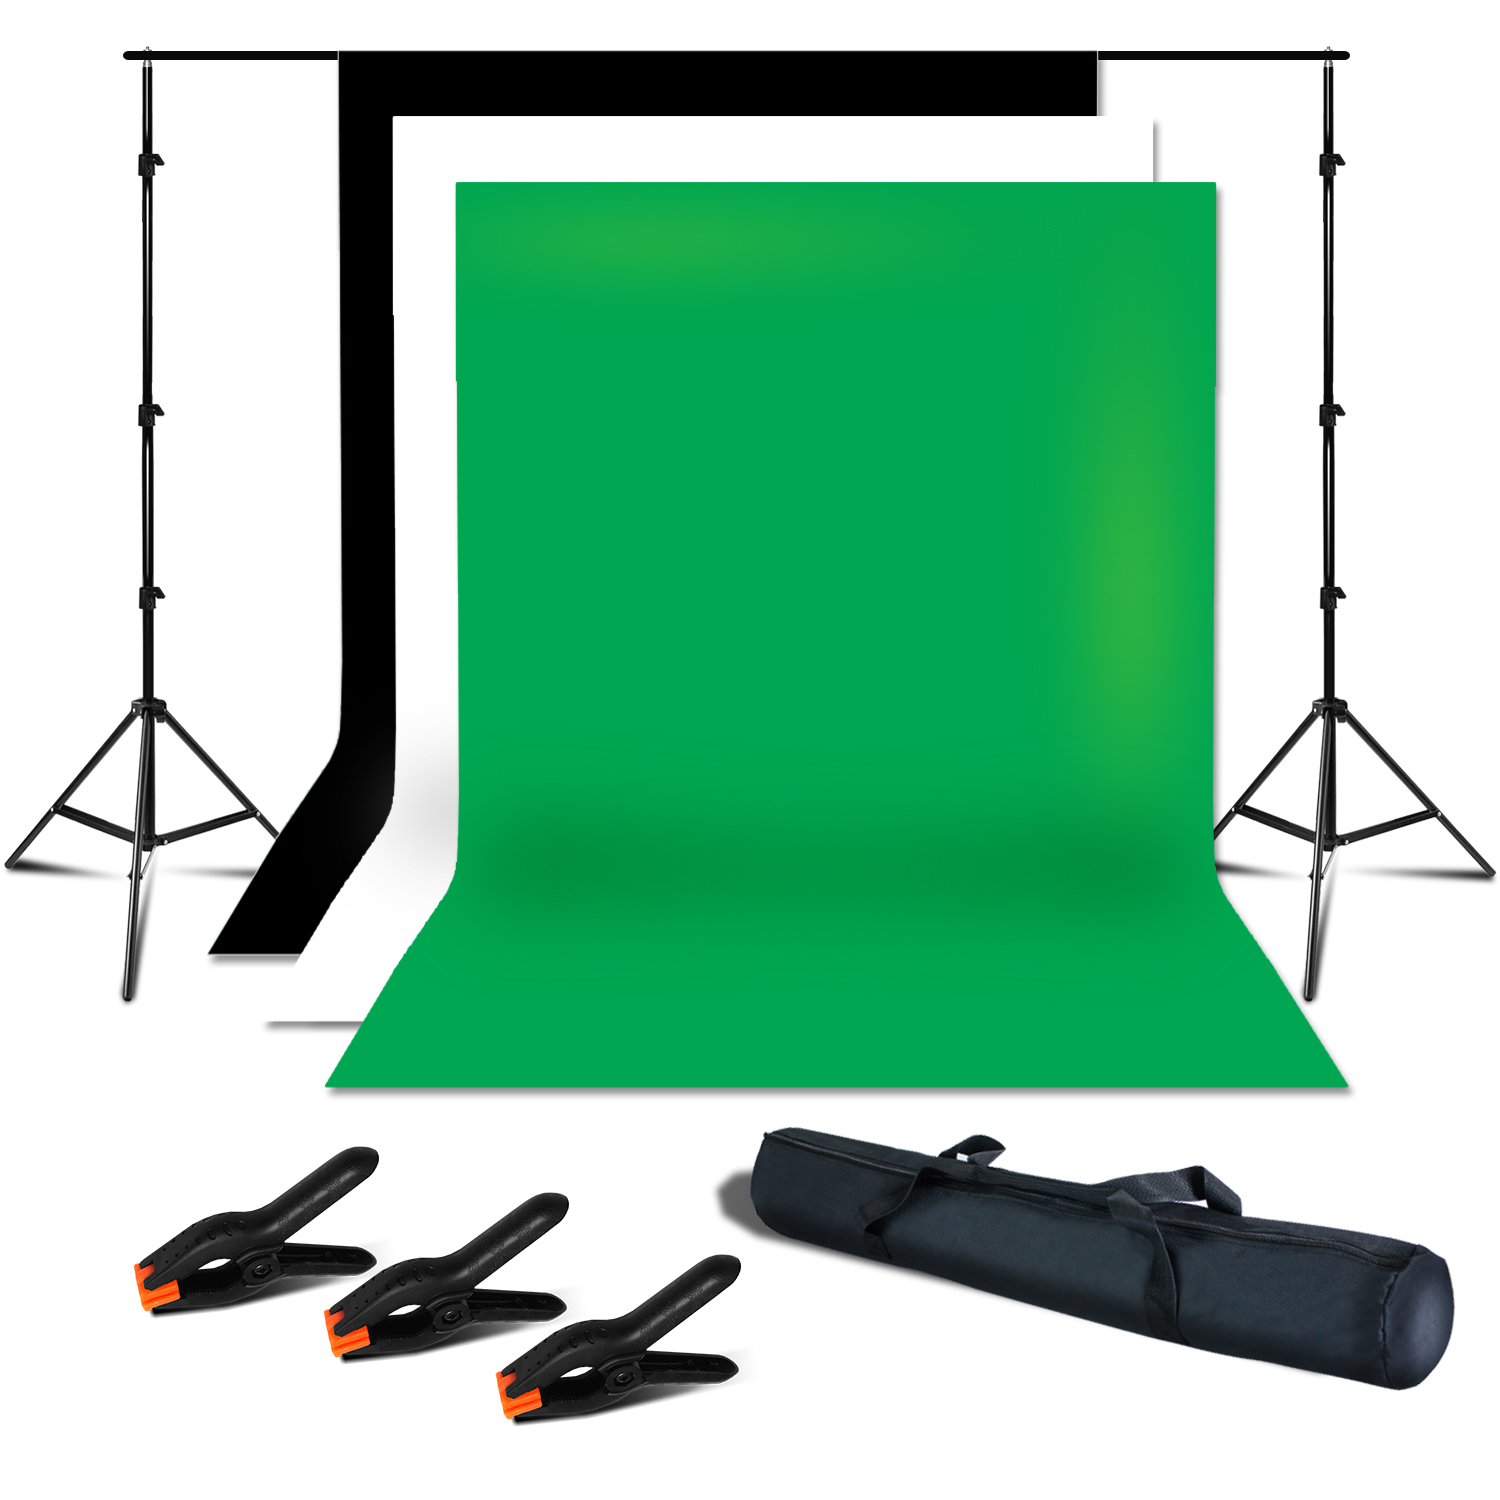 Loadstone Studio Photo Studio 7.5 x 10 ft. Adjustable Background Support Stand, Backdrop Support System Kit with 6 x 9 ft. White, Black, Green Muslin Backdrop and Background Spring Clamps, WMLS2741